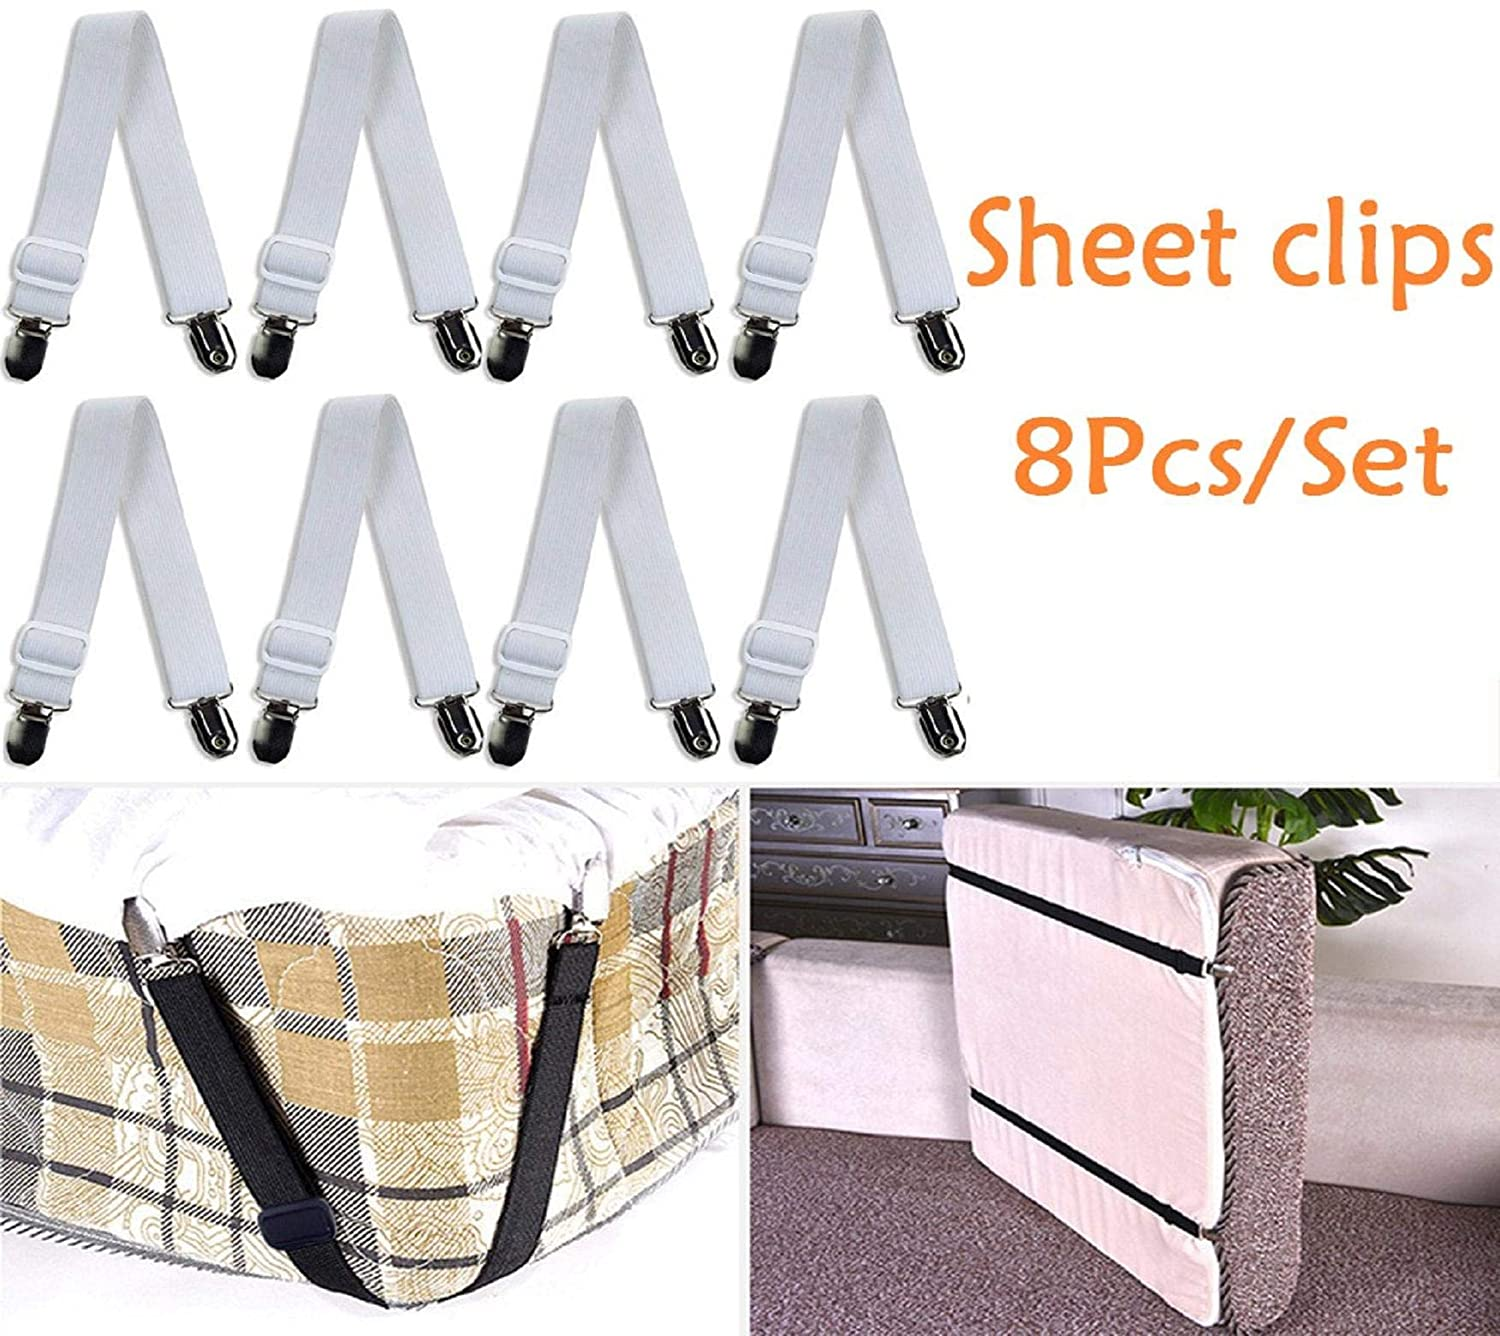 Vertily Sheet Clips,8Pcs Metal Bed Sheet Fasteners Mattress Strong Clip Grippers Elastic Holder,Adjustable Triangle Heavy Duty Elastic Sheet Band Straps Suspenders Corner Gripper Holder